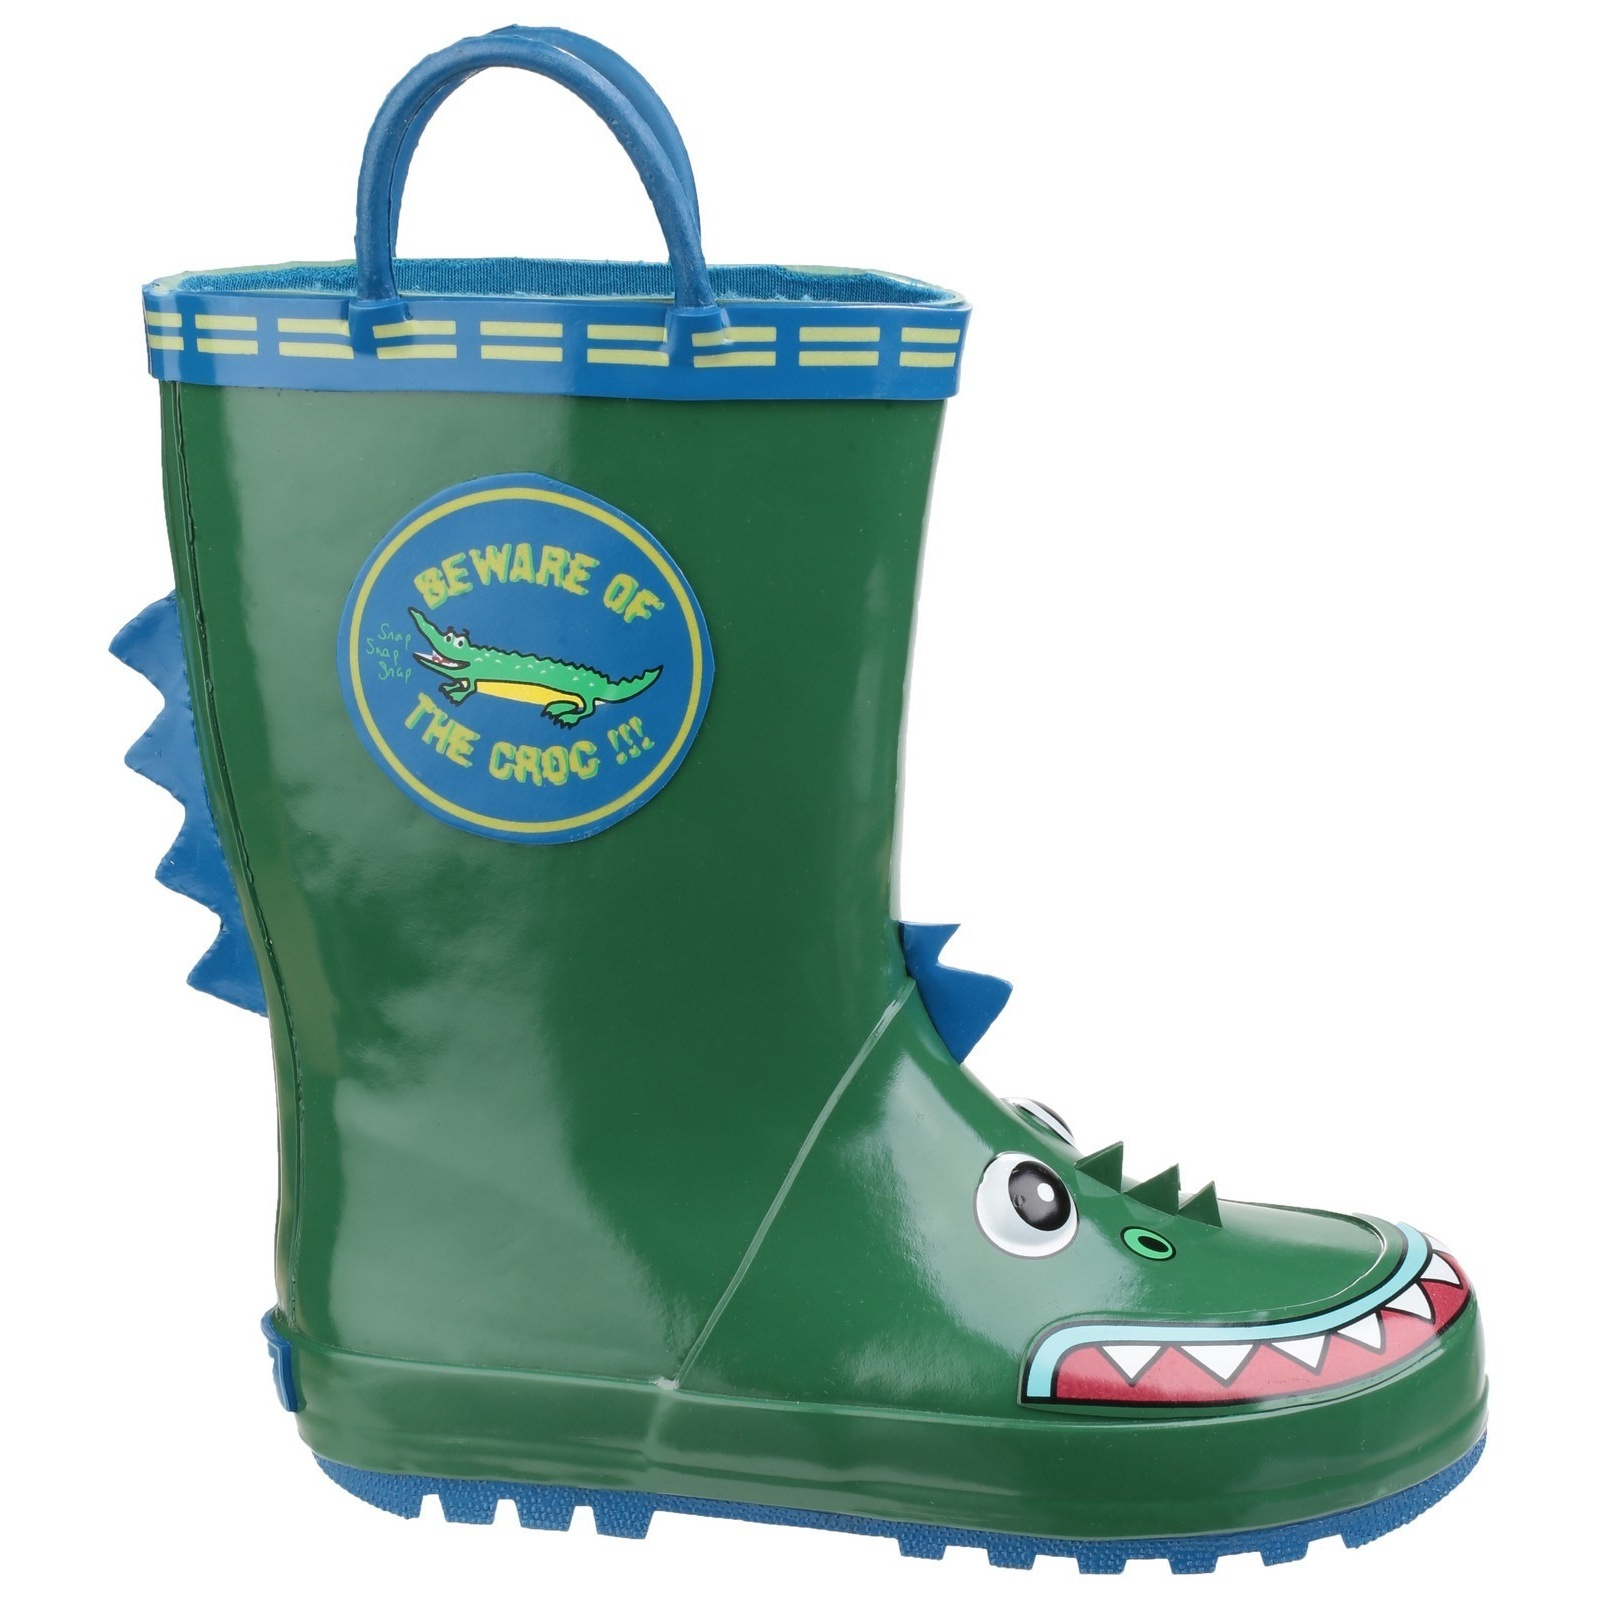 Puddle Play Boy/'s Green Frog Rain Boots Sizes Toddler//Little kids GNR407444